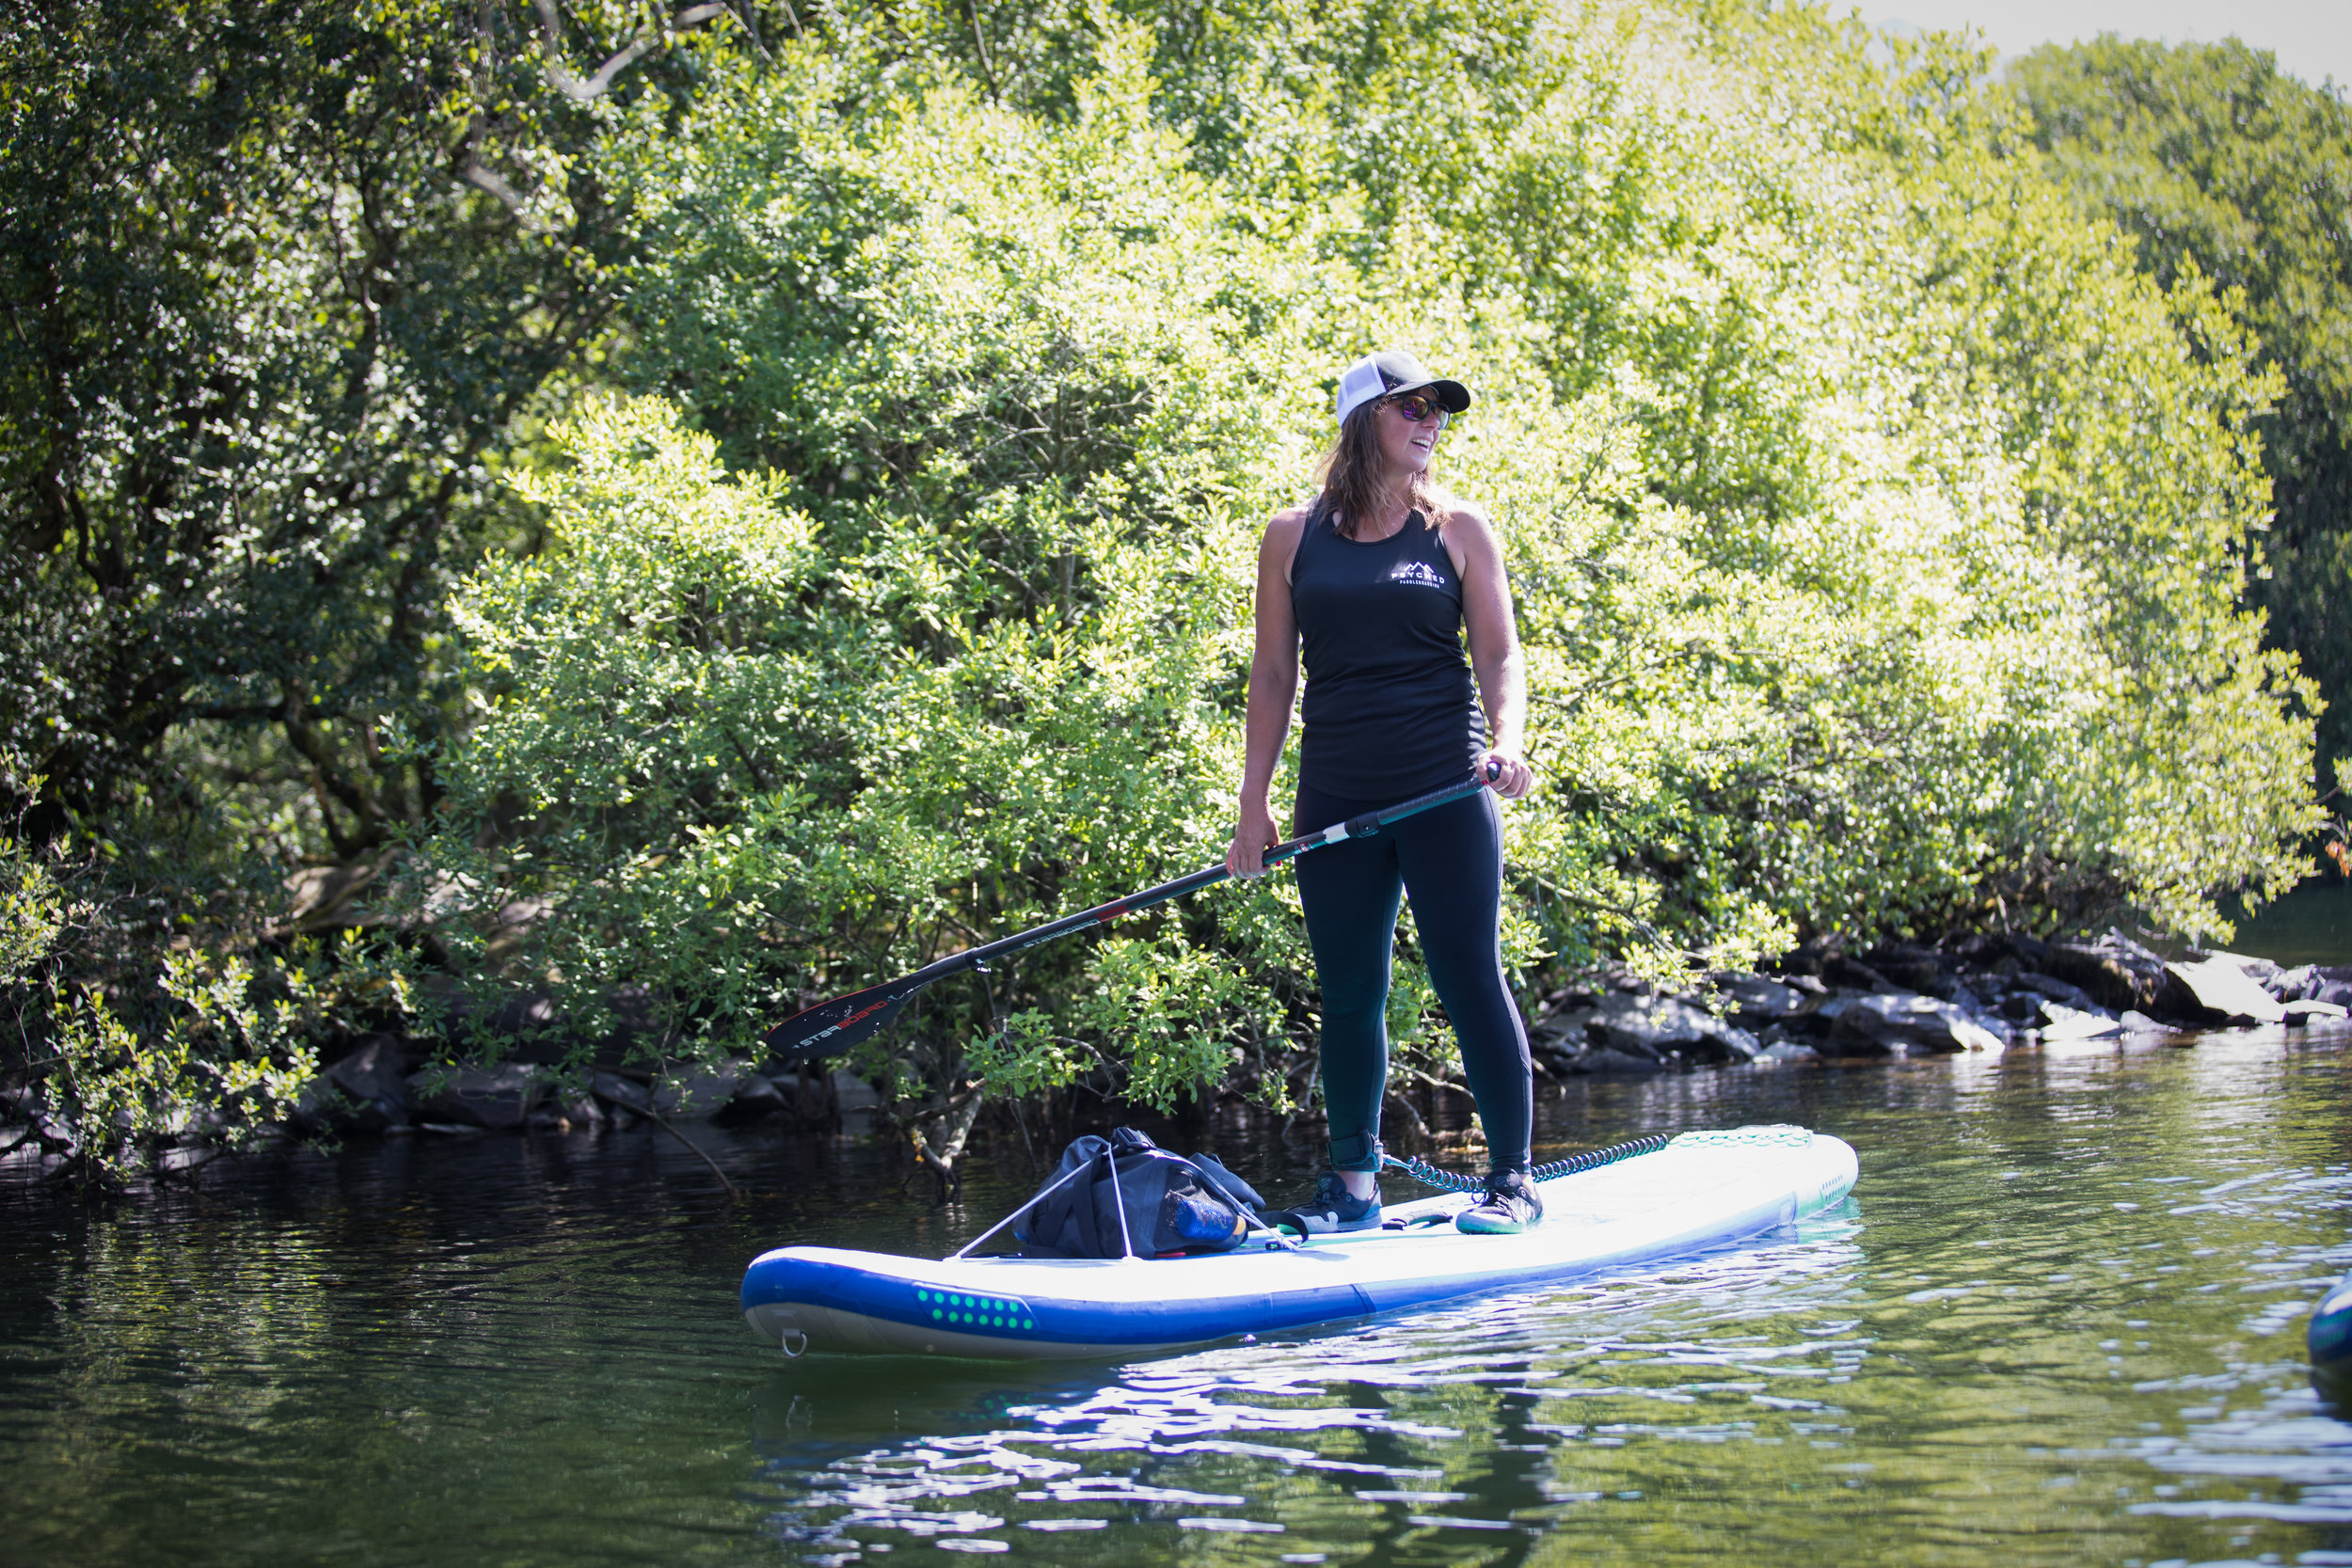 02_07_18_Psyched_Paddleboarding_0586.jpg